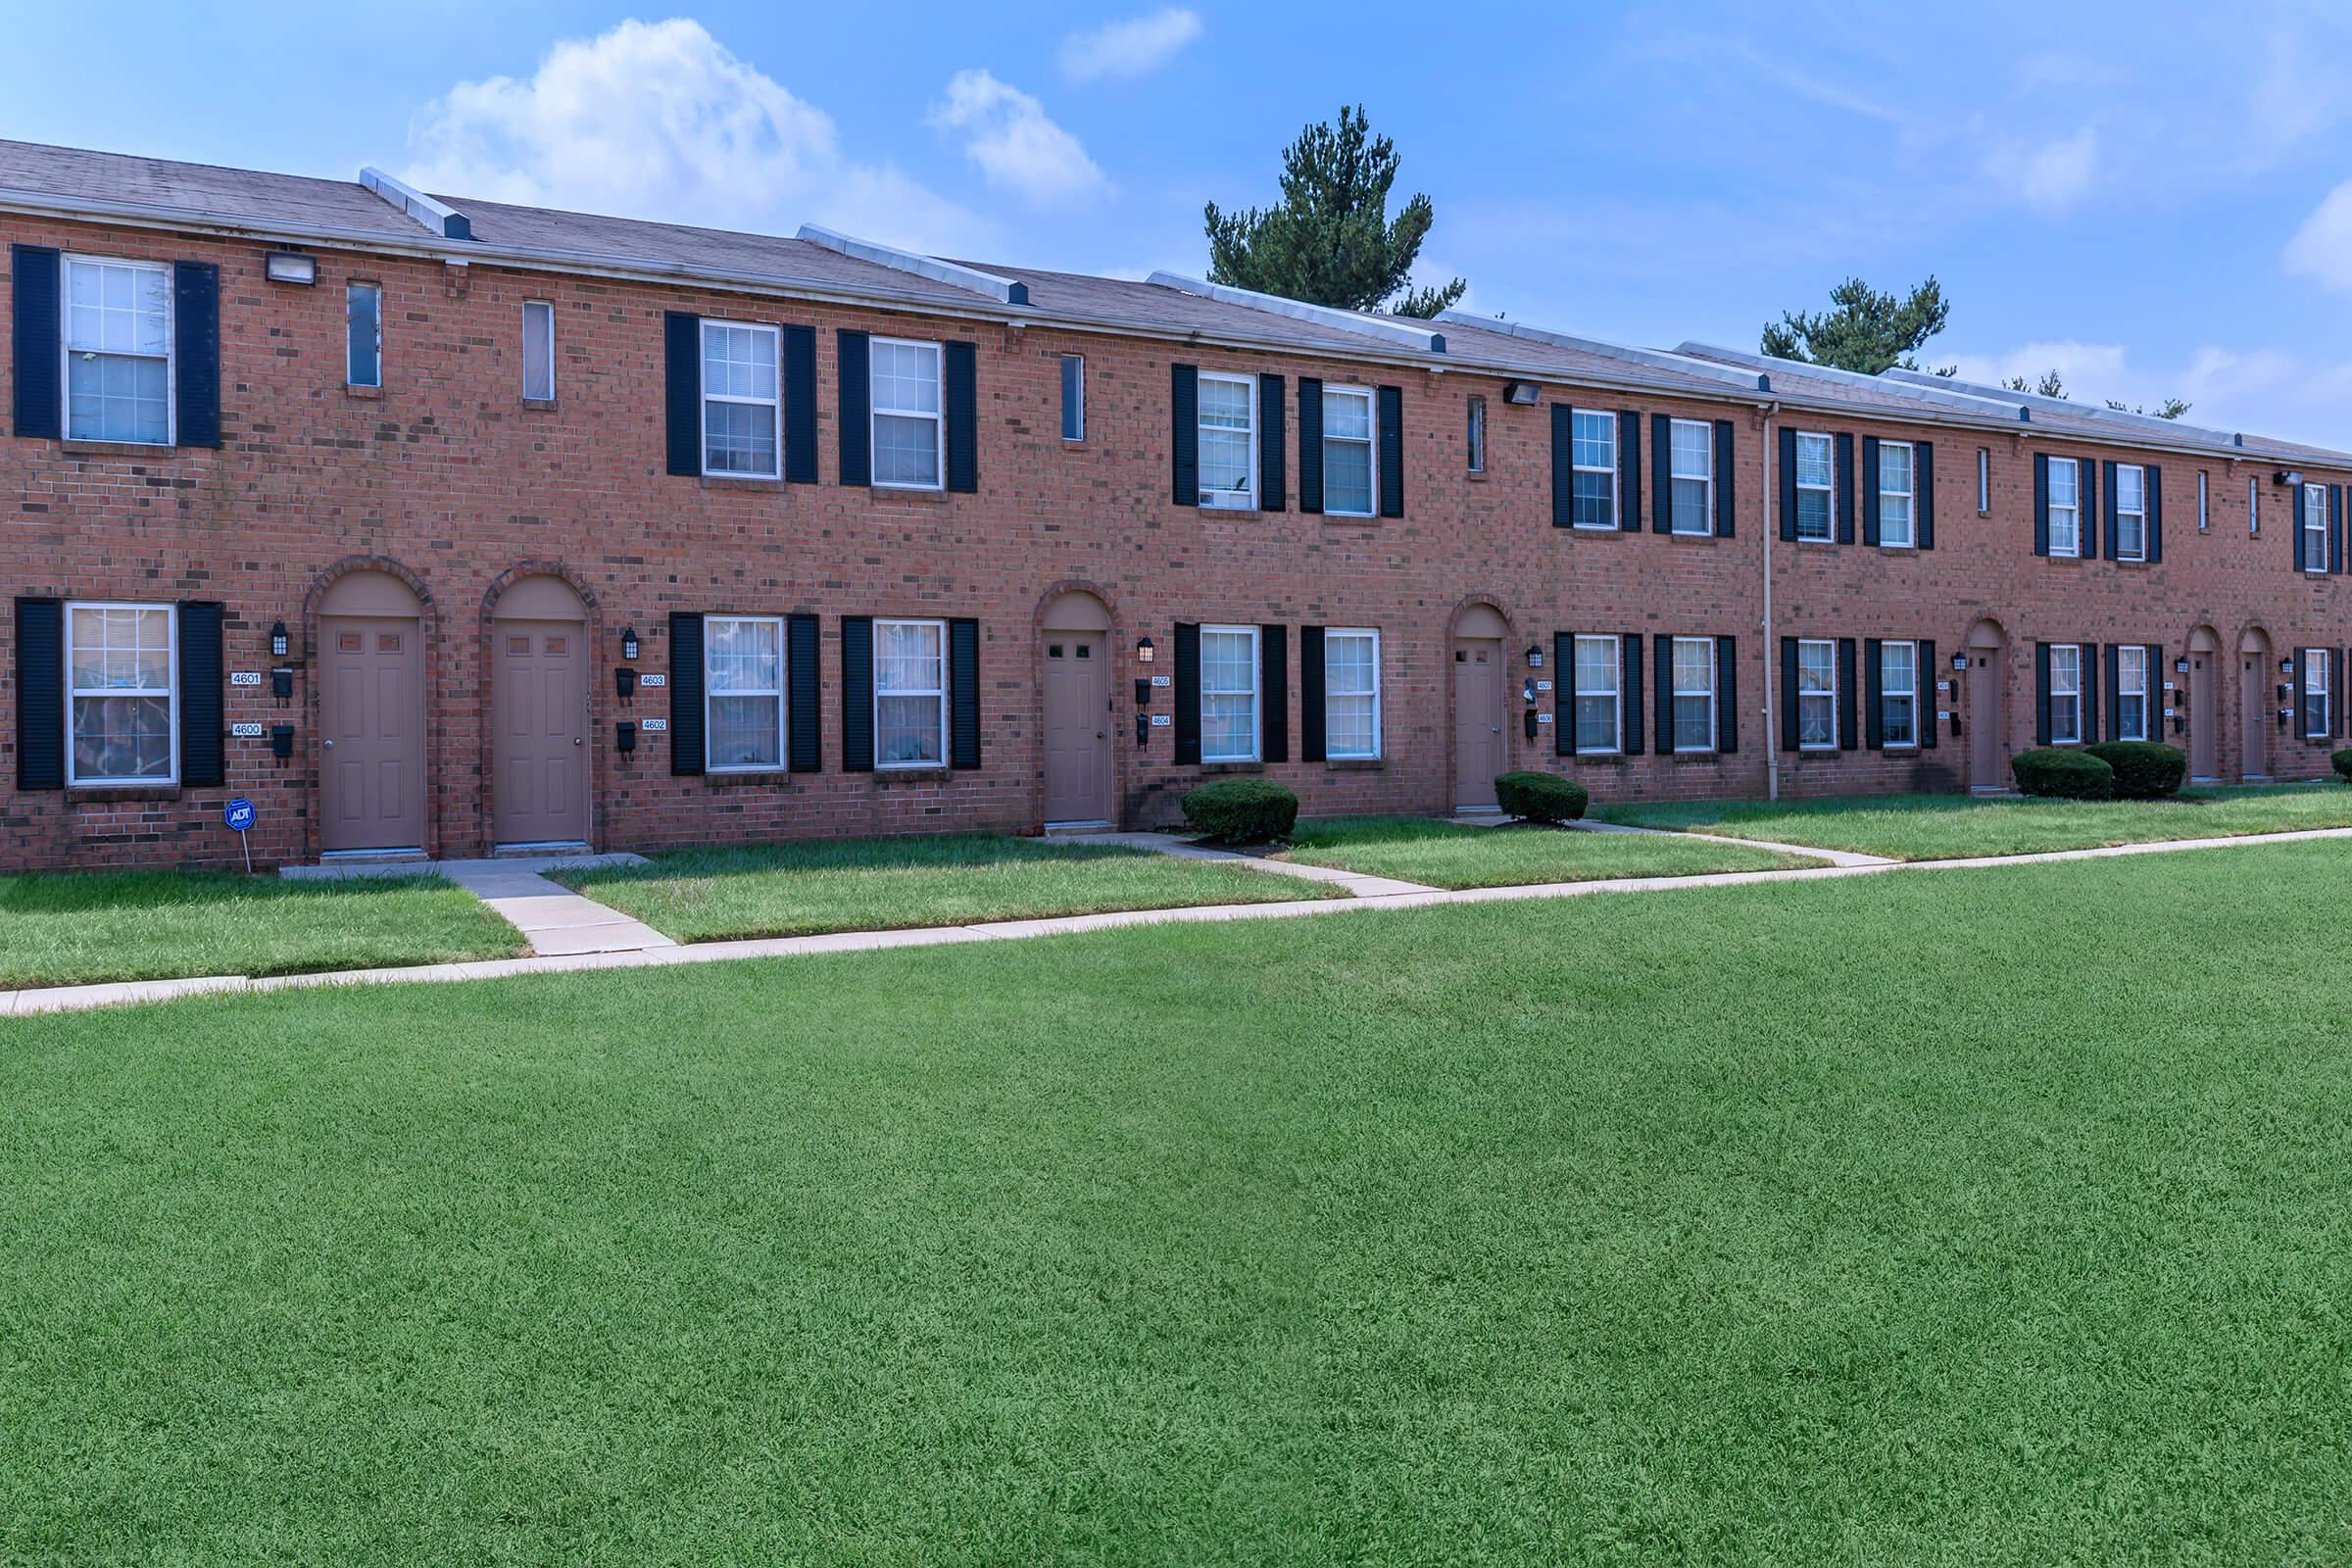 a large brick building with green grass